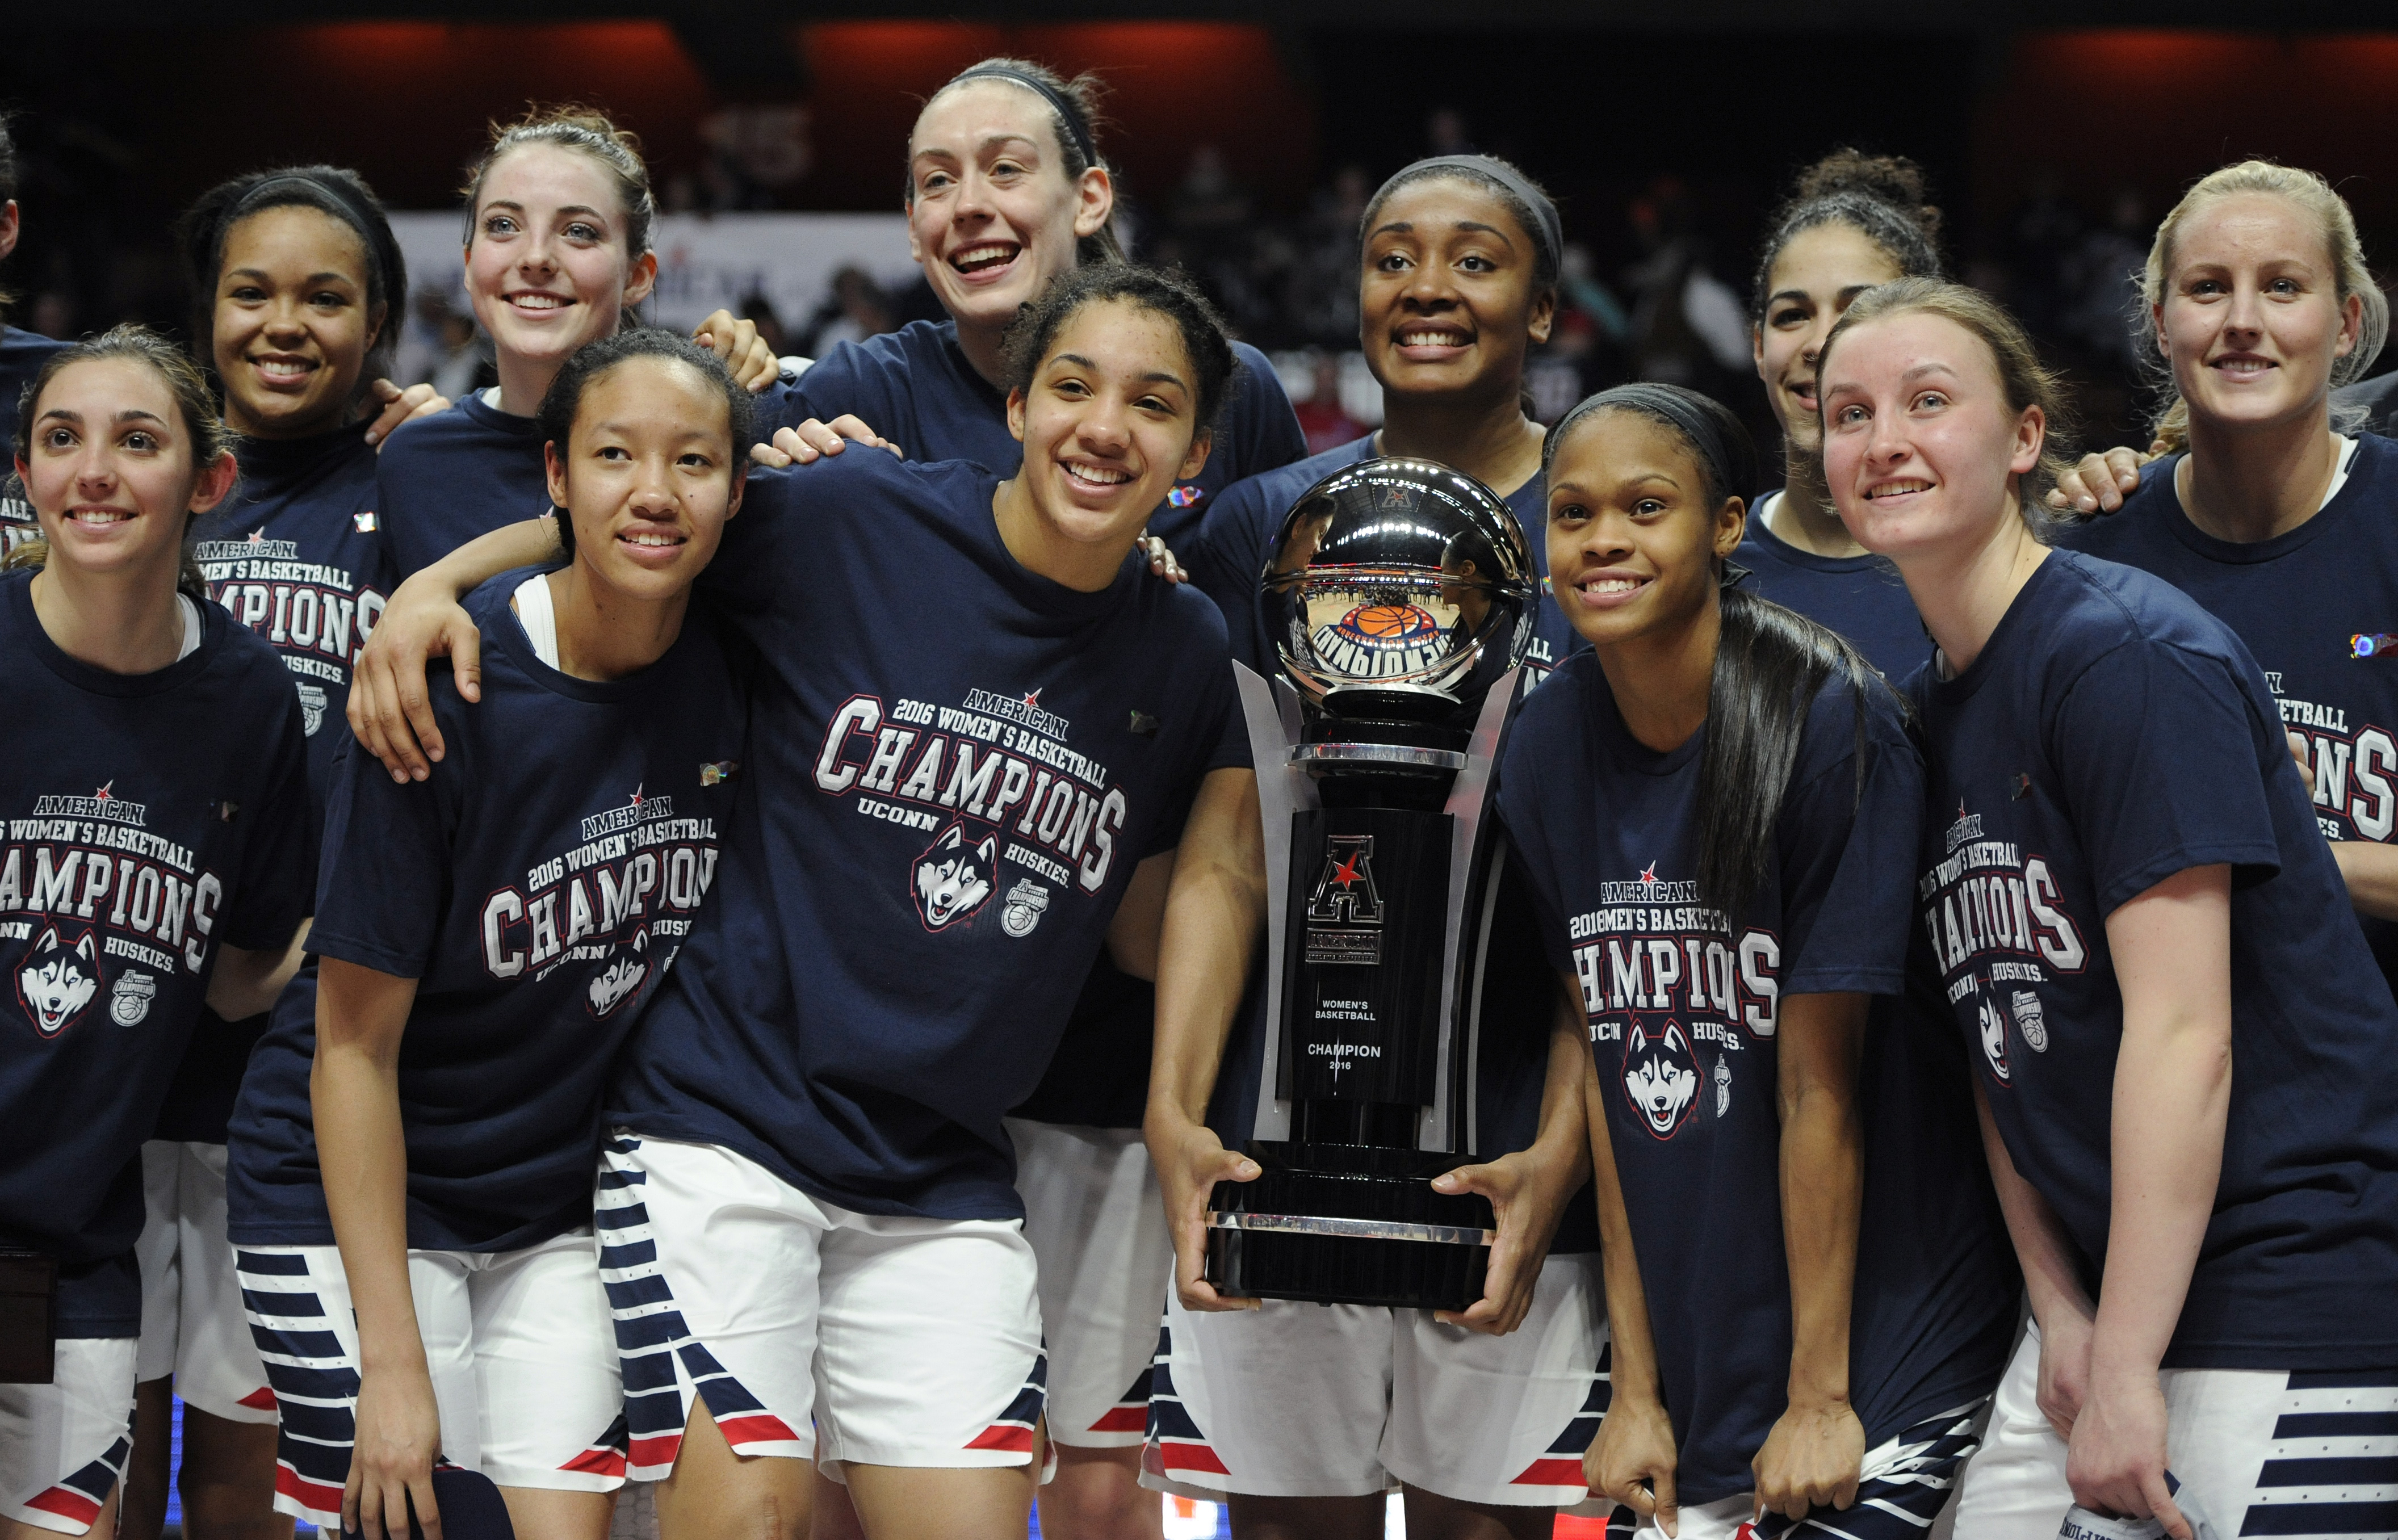 FILE- In this March 7, 2016, file photo, Connecticut players pose with the championship trophy at the end of a NCAA college basketball game in the American Athletic Conference tournament finals against South Florida at Mohegan Sun Arena in Uncasville, Con